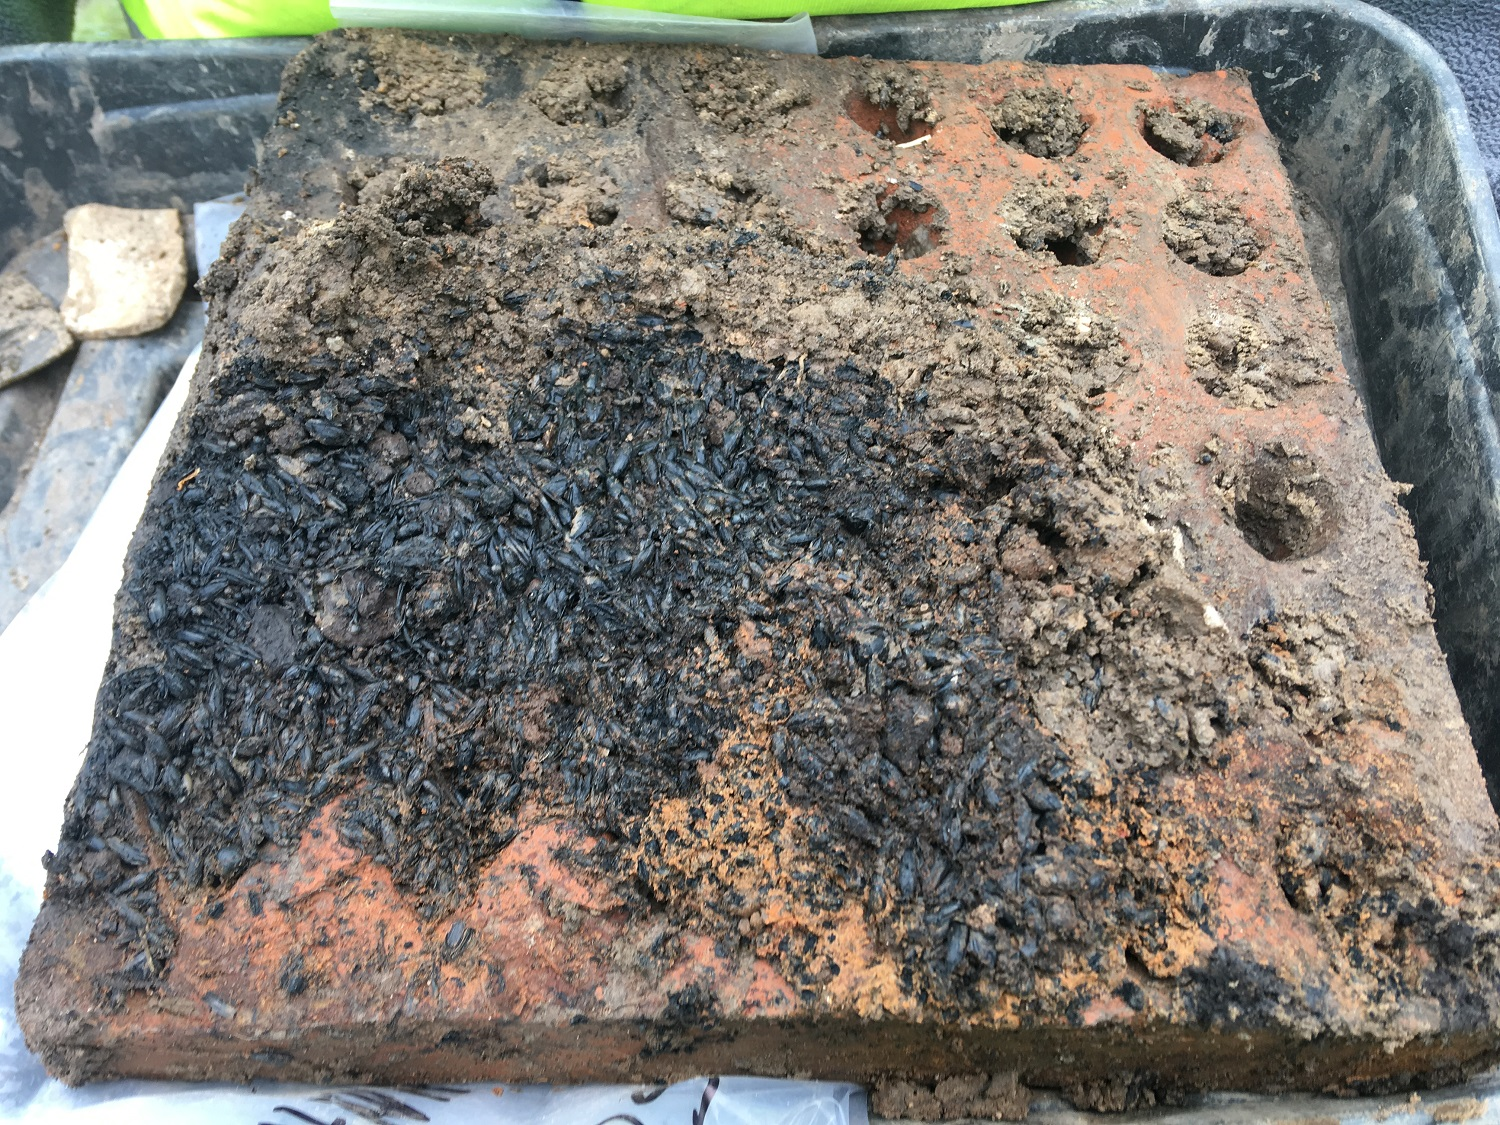 Square red brick with small hoes and charred grain attached